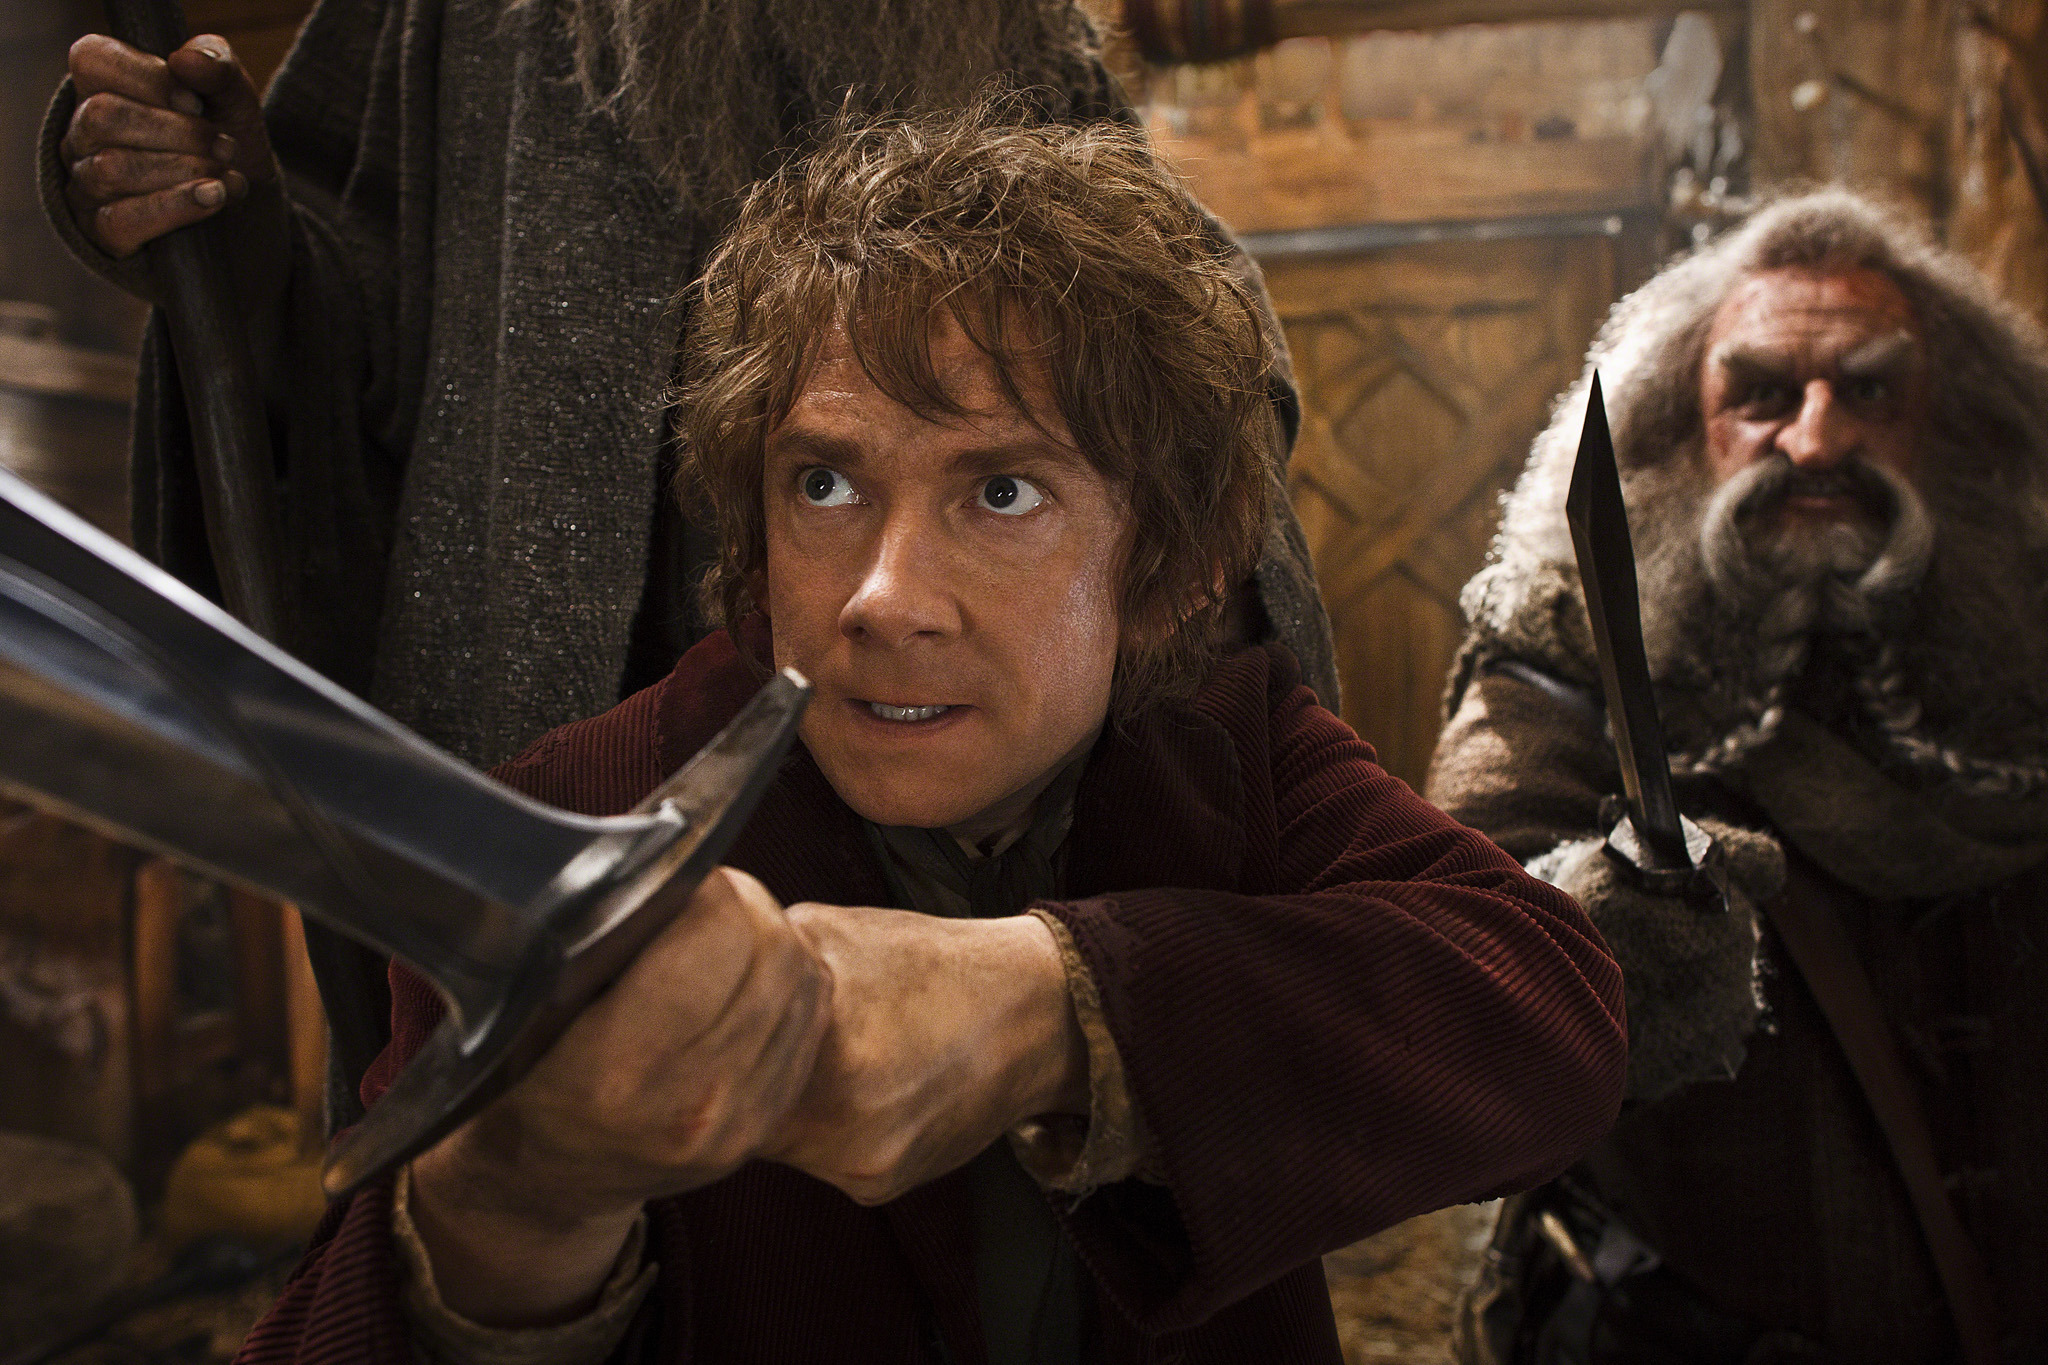 The Hobbit The Desolation Of Smaug 2013 Directed By Peter Jackson Film Review